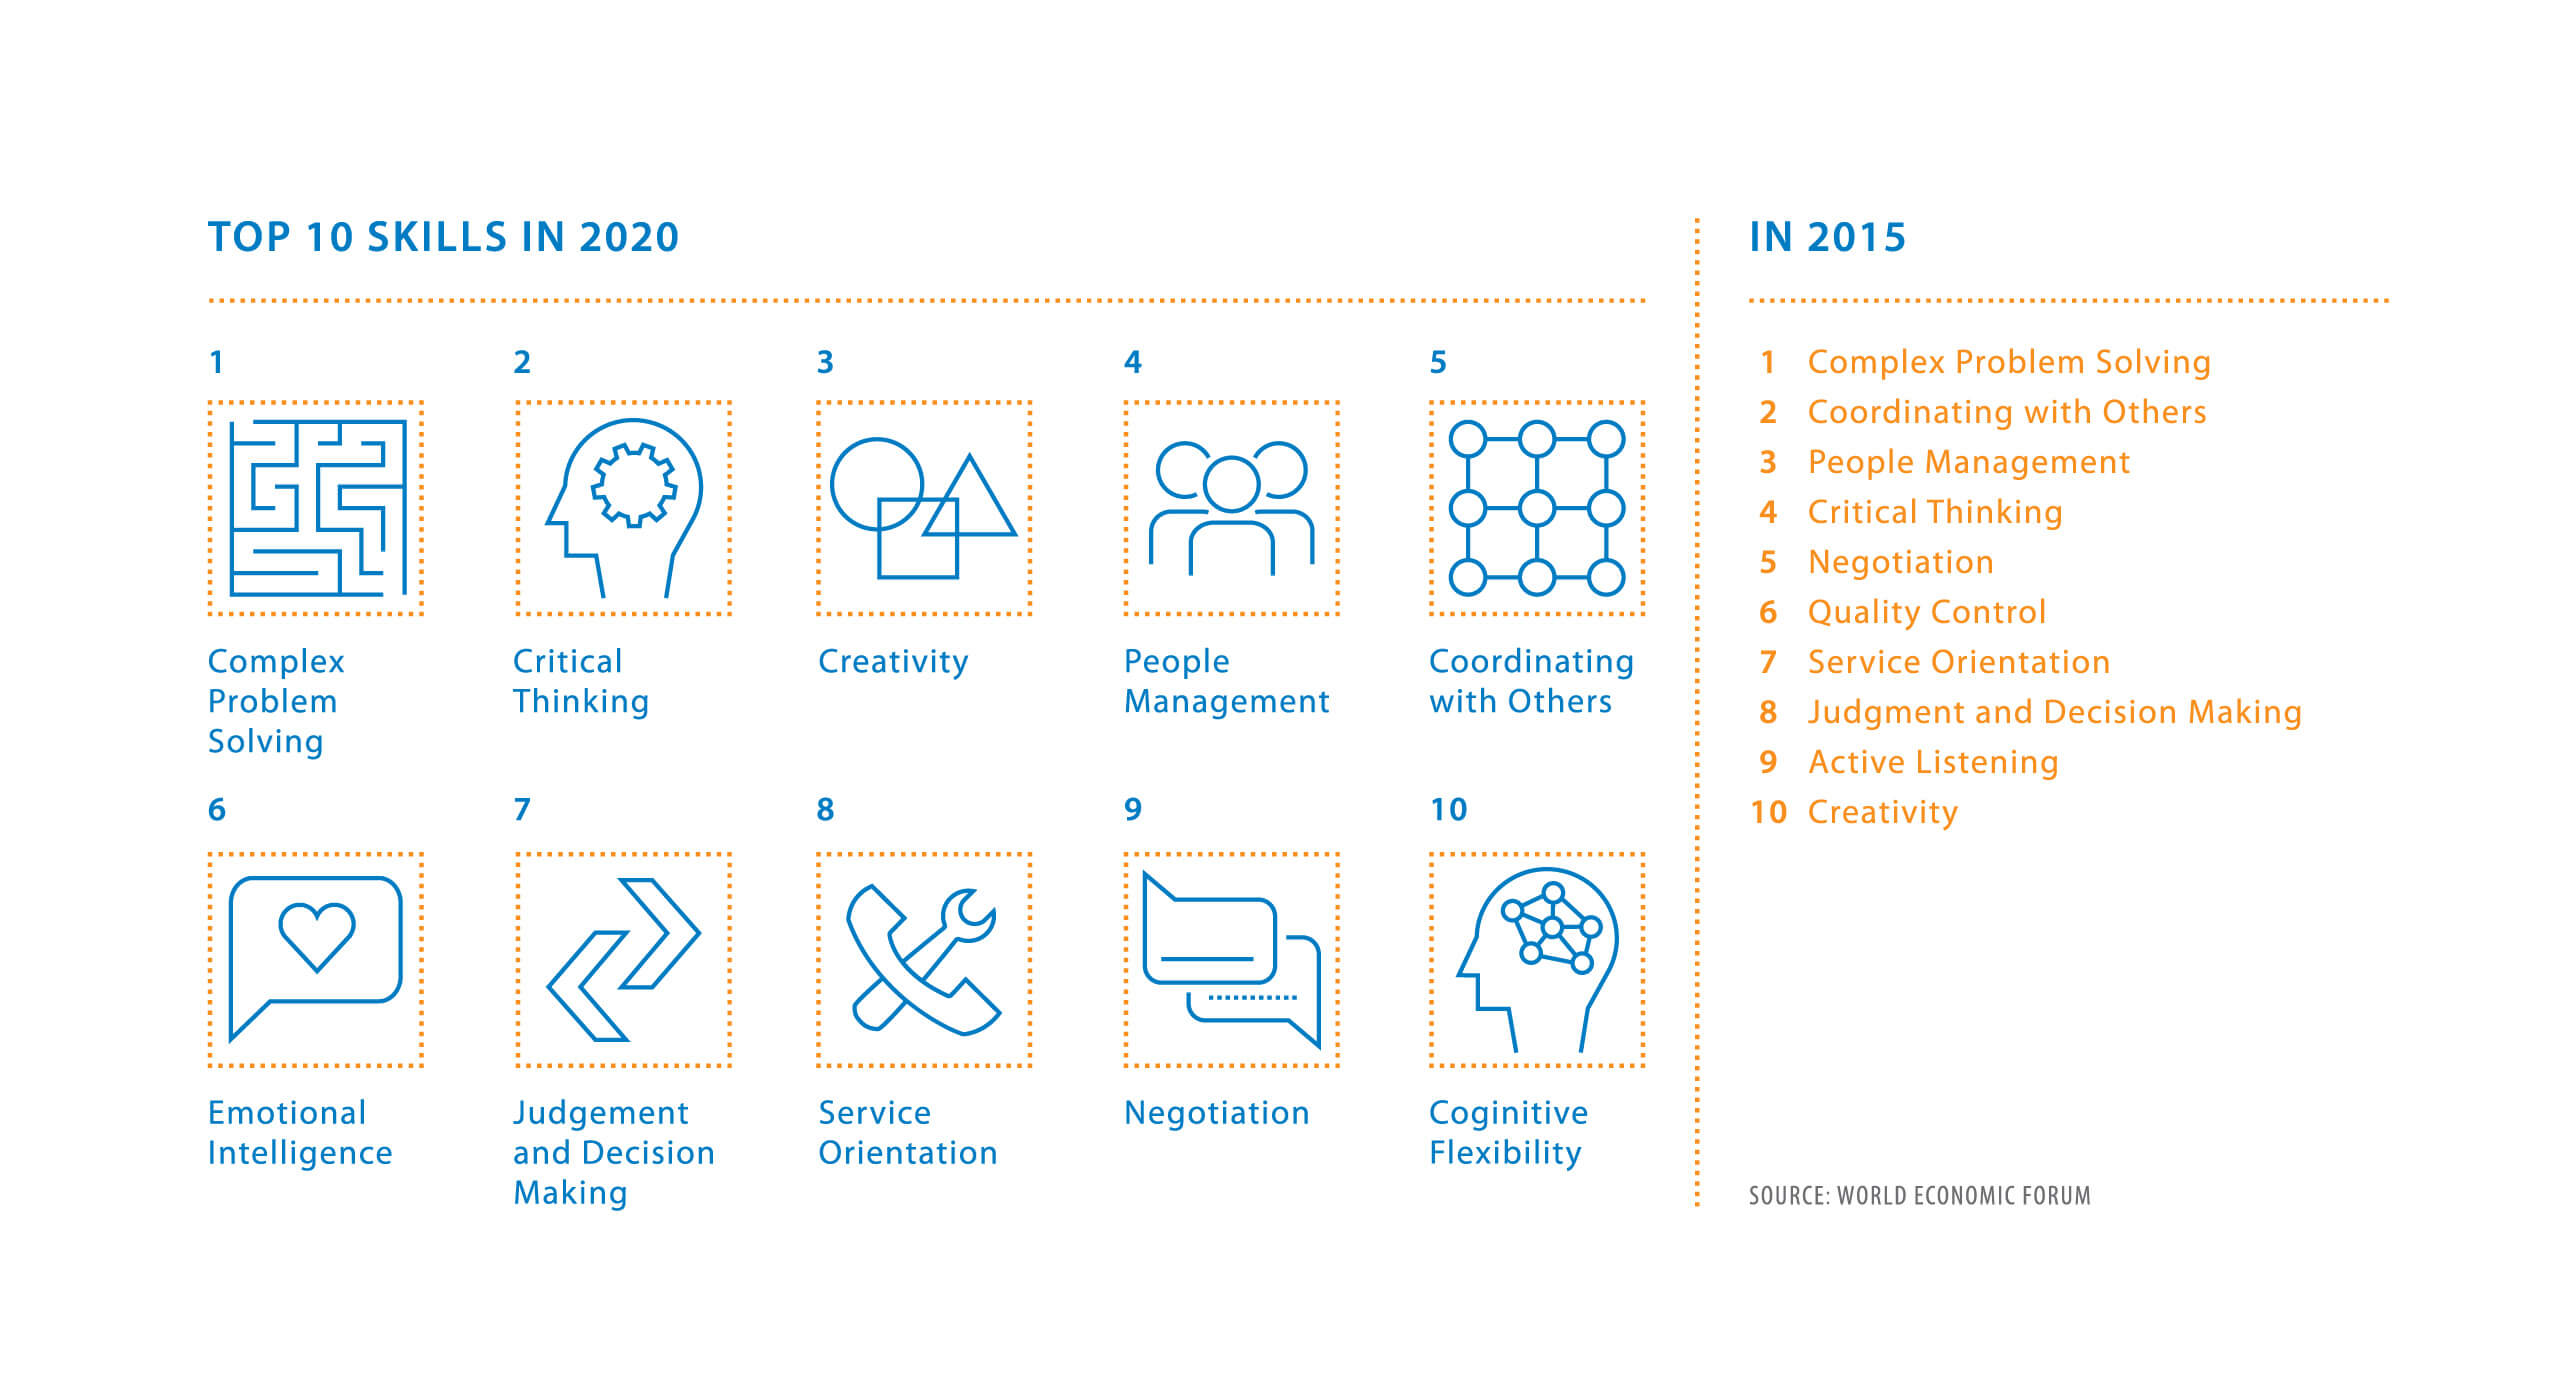 top skills 2020 infosys consulting one hub many perspectives while these two lists look similar the few differences are critical to changing the jobs market over the next few years amid constants such as complex